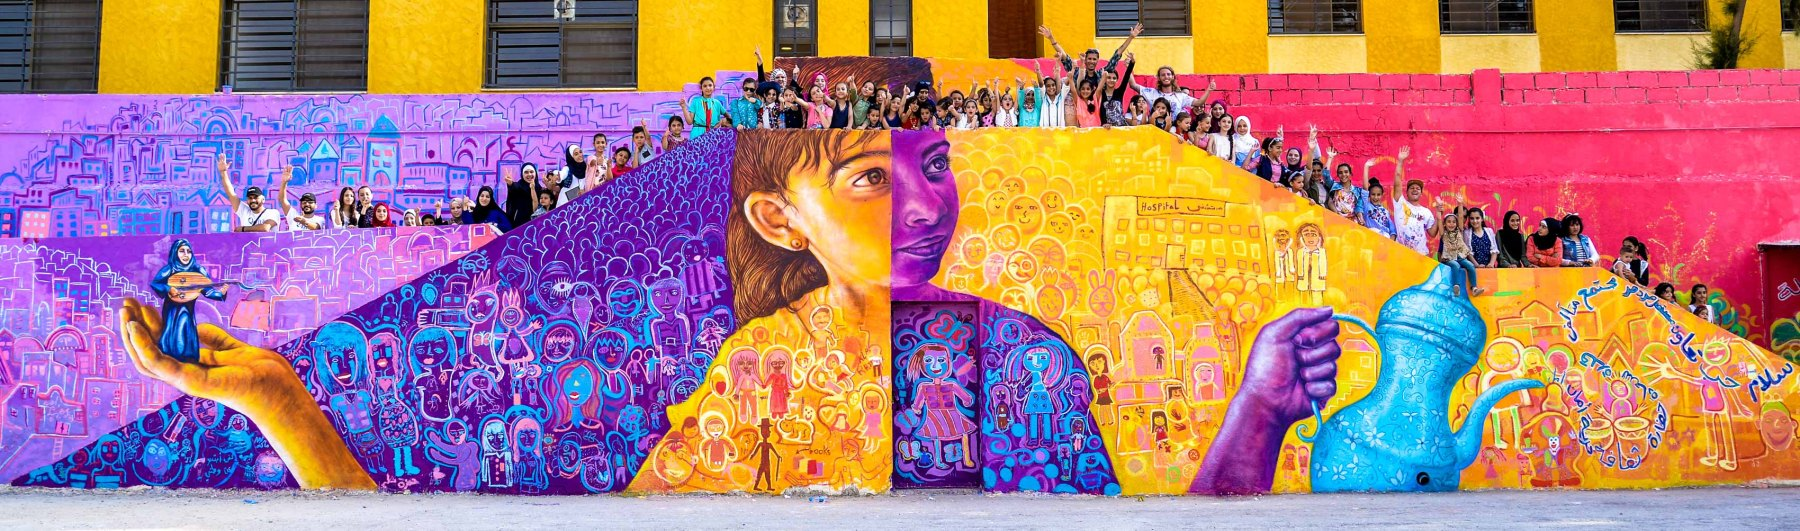 Joel Artista - Group mural projects for refugee communities led by artist Joel Bergen (co-founder of Artolution, below)